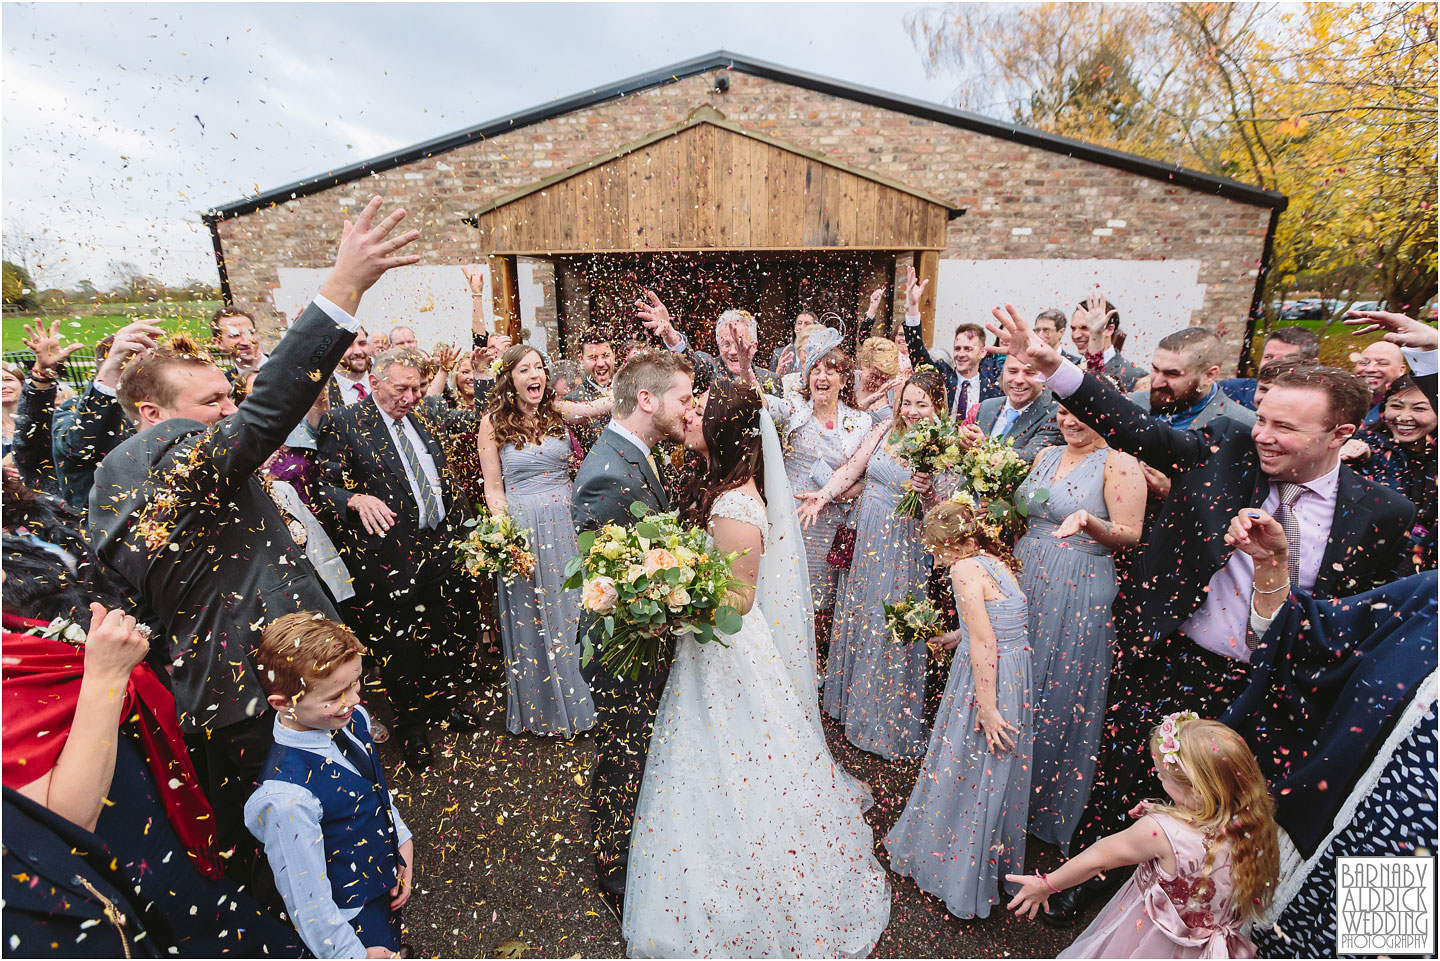 Confetti Photo at Villa Farm Wedding Photos, York unusual wedding venues, York Barn wedding venue, York Barn wedding at Villa Farm